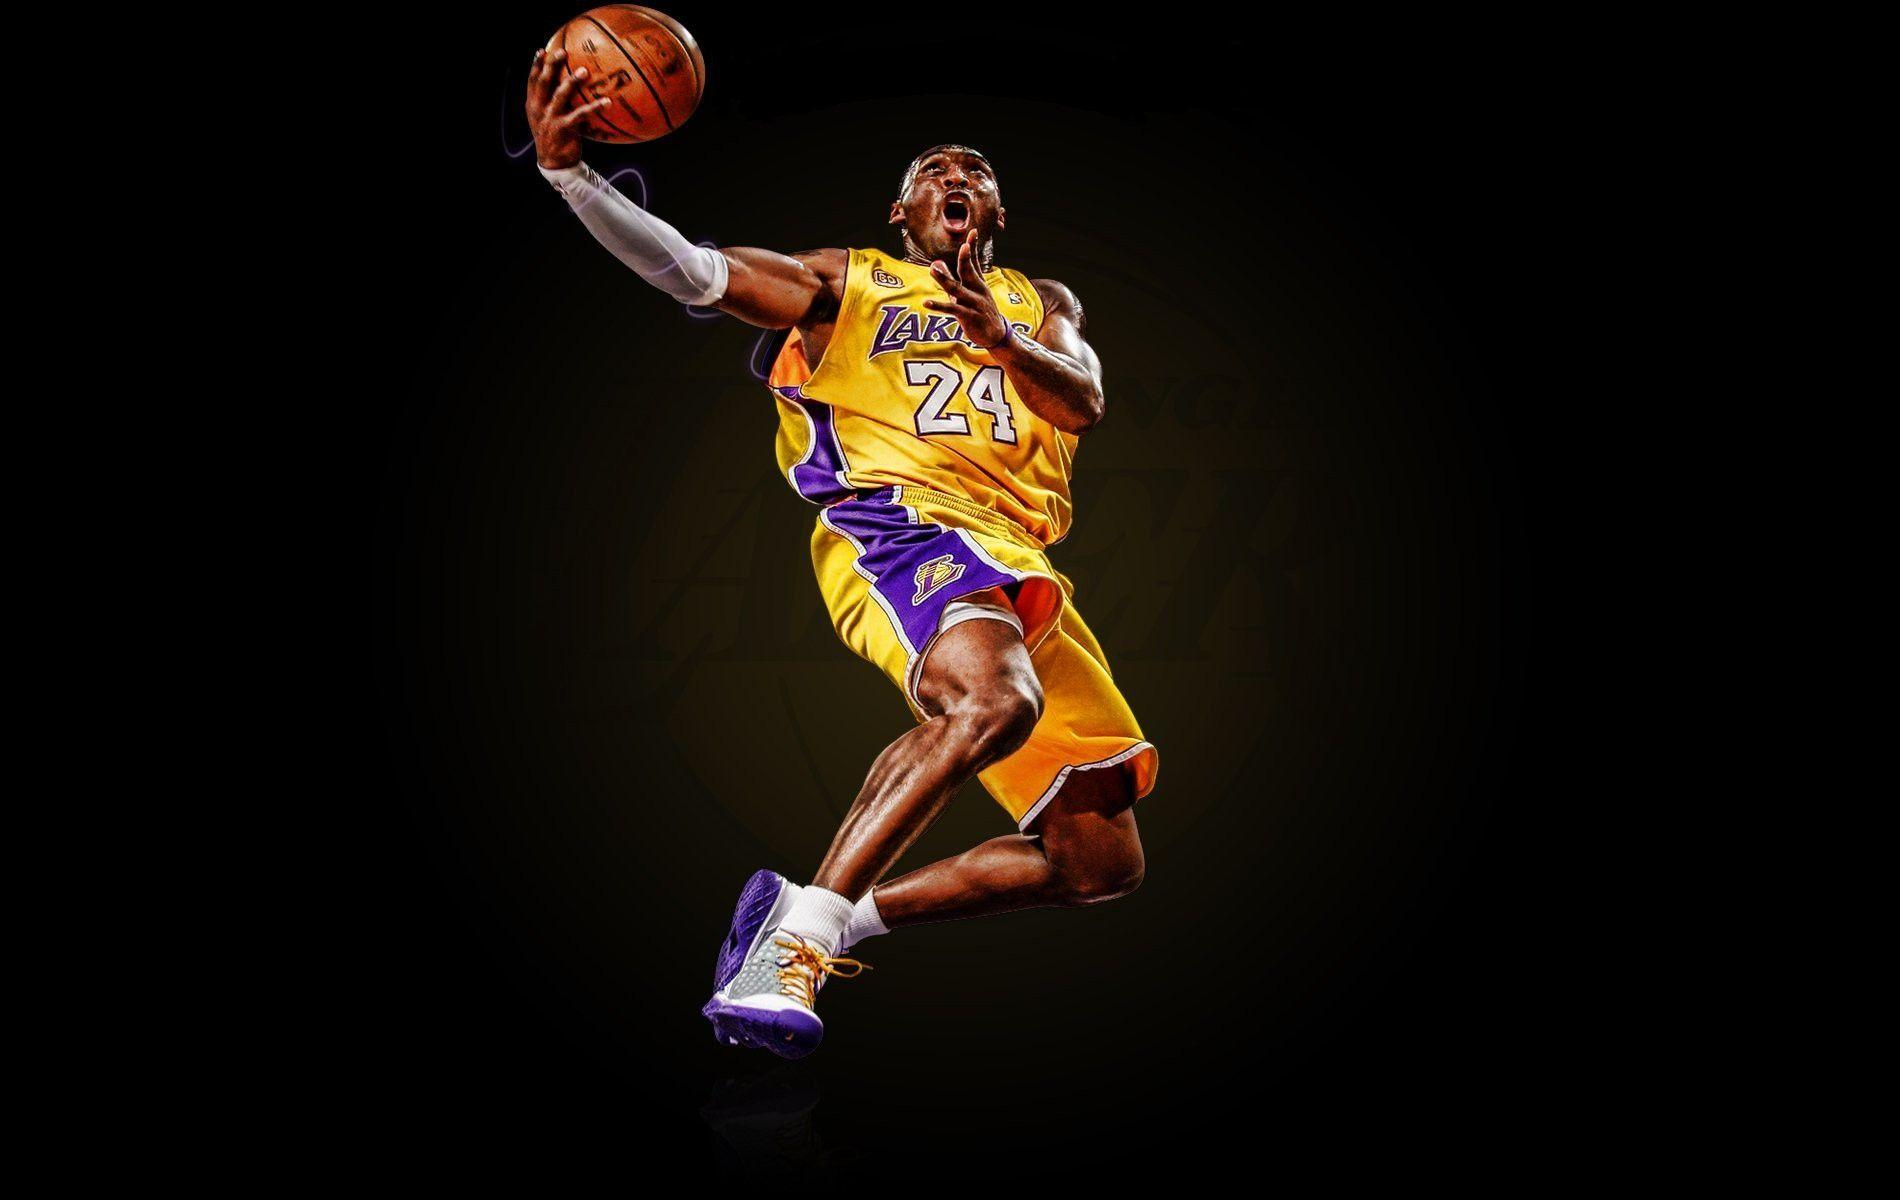 kobe bryant wallpaper 2016 - photo #13